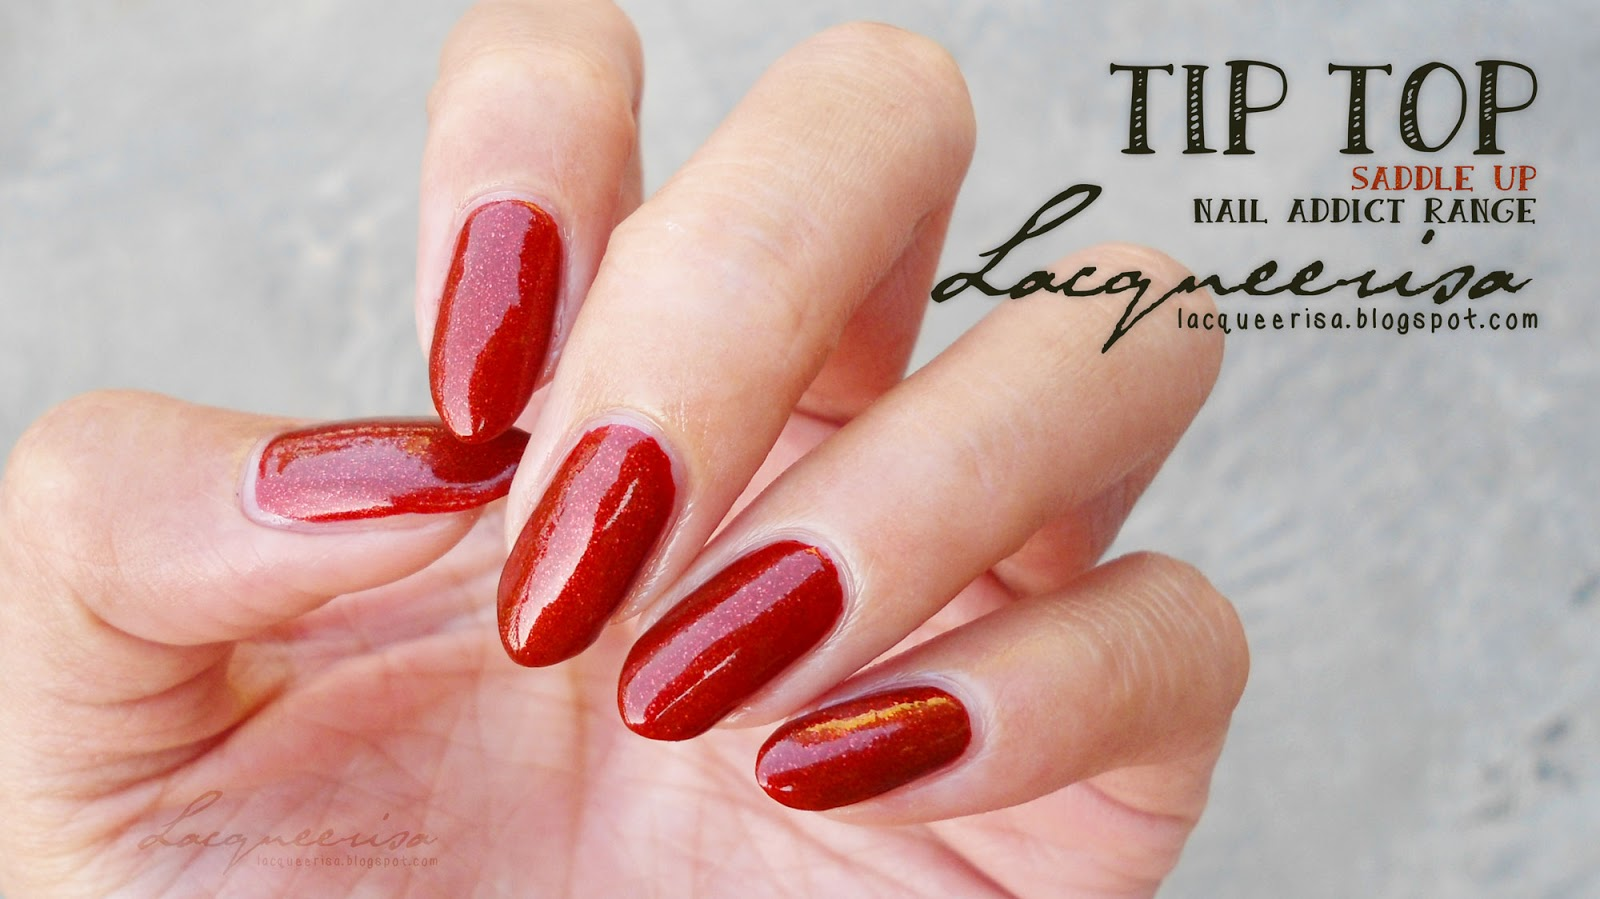 Lacqueerisa: Tip Top Nail Addict, Saddle Up